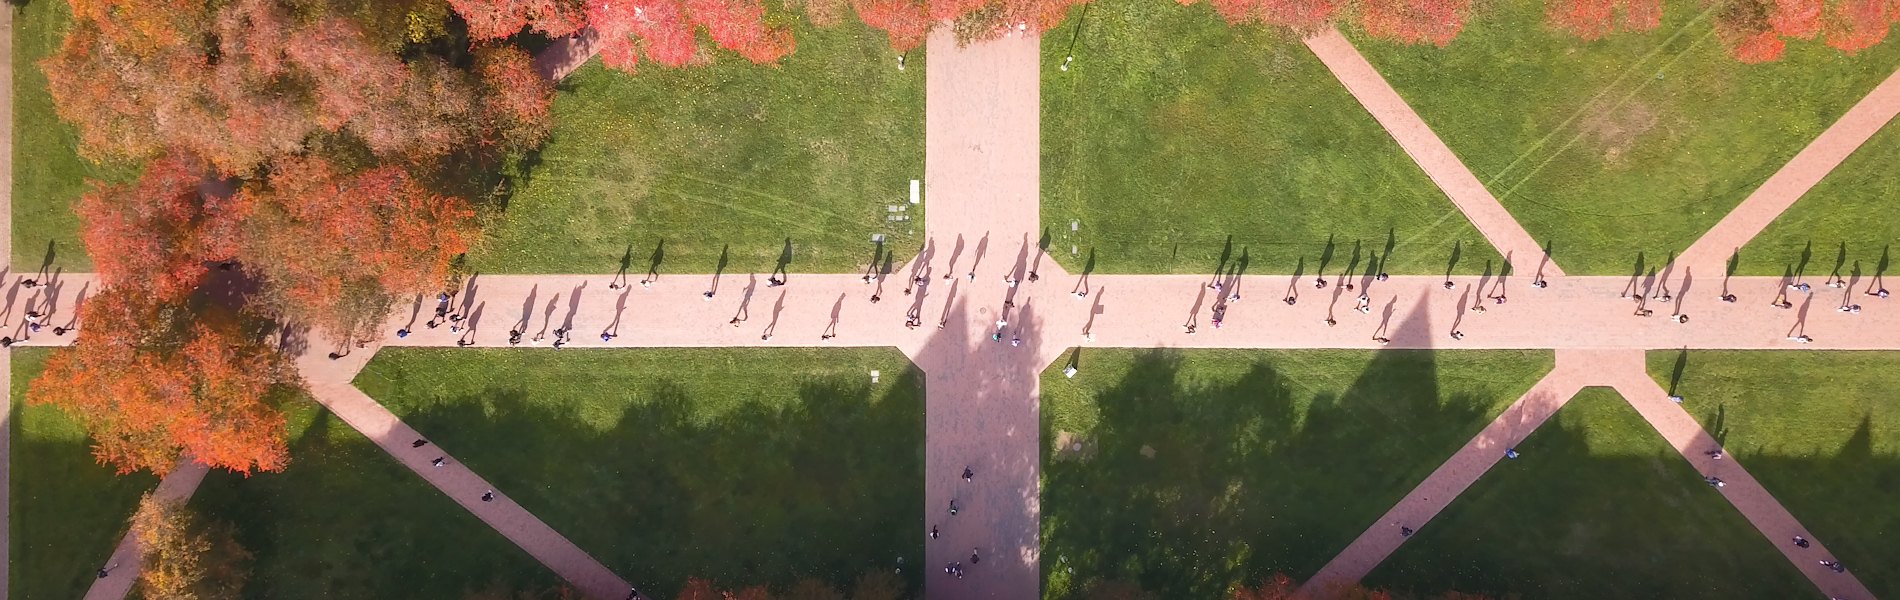 Top-down view of UW quad from a drone hovering above